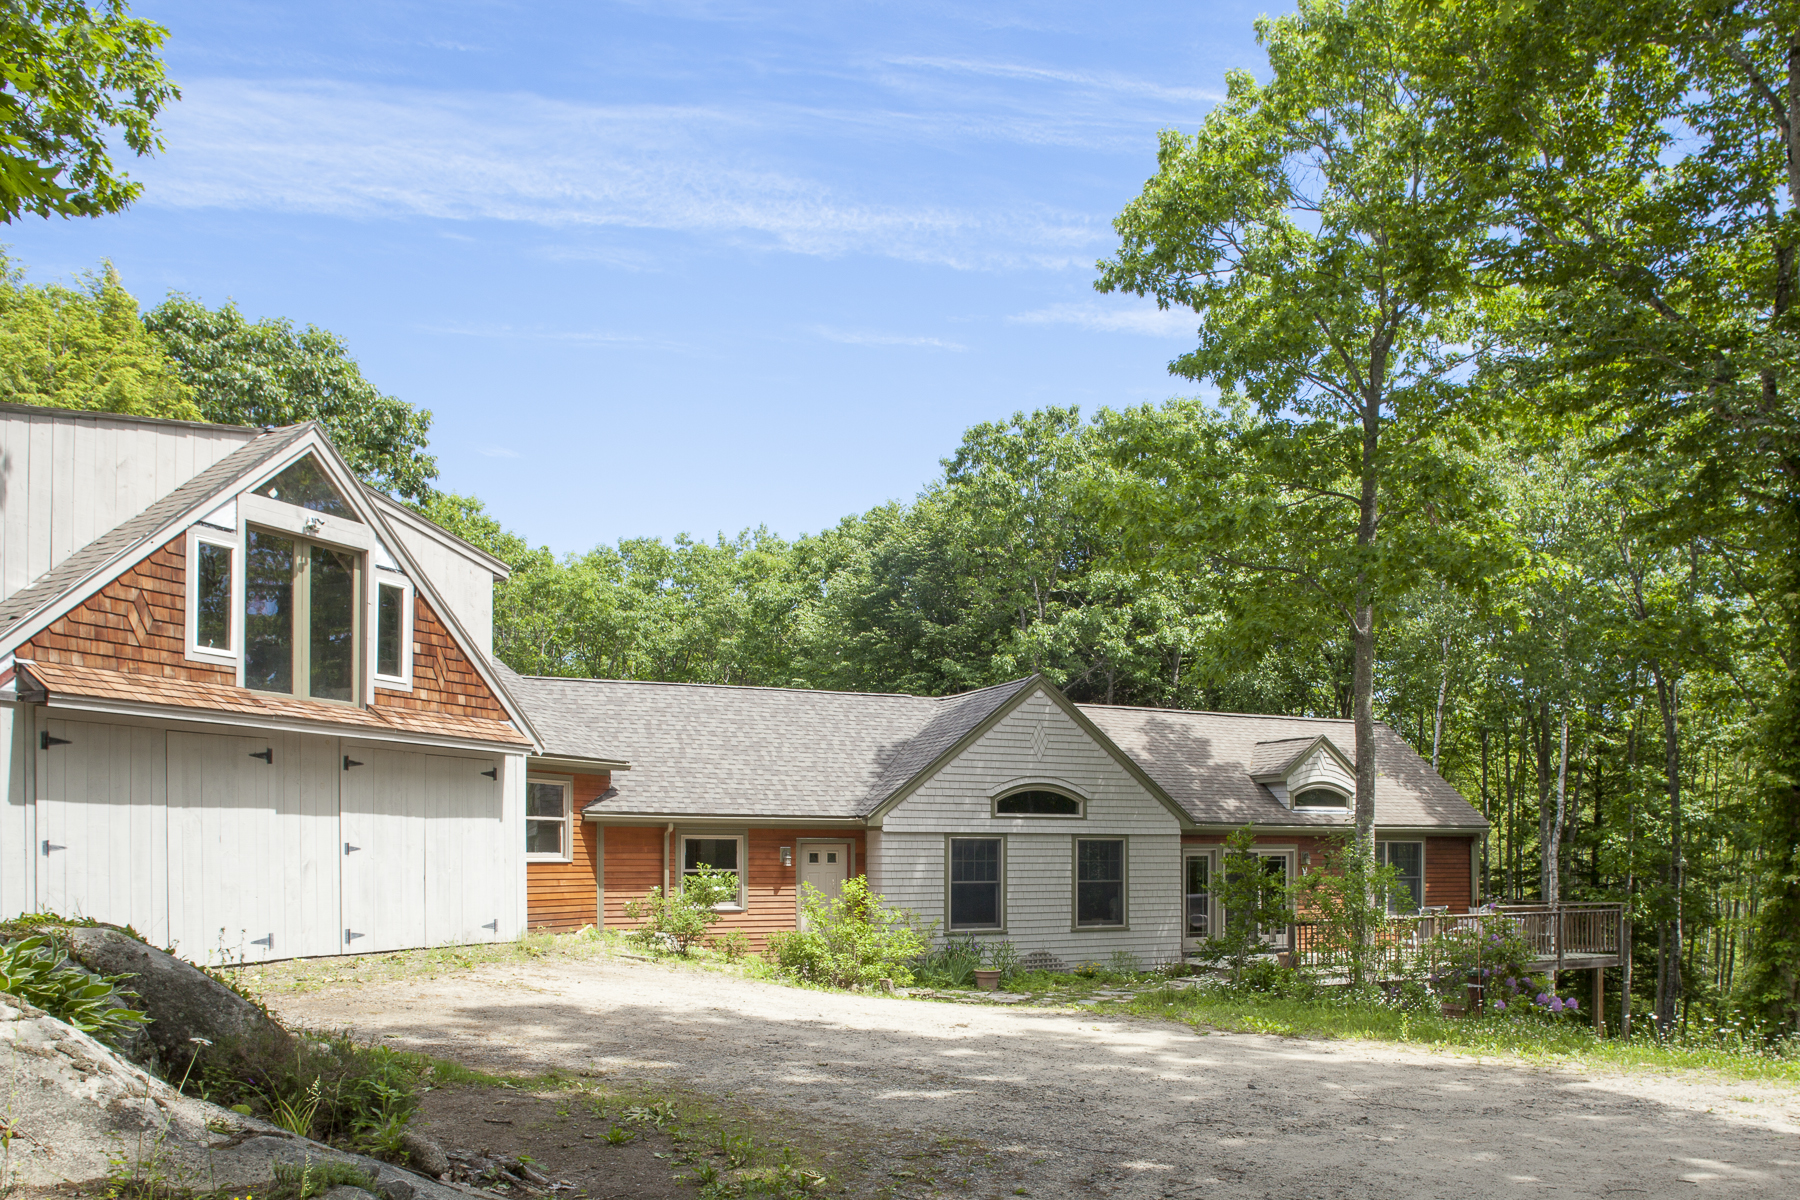 82 Old Cluff Rd, Kennebunkport, ME 04046